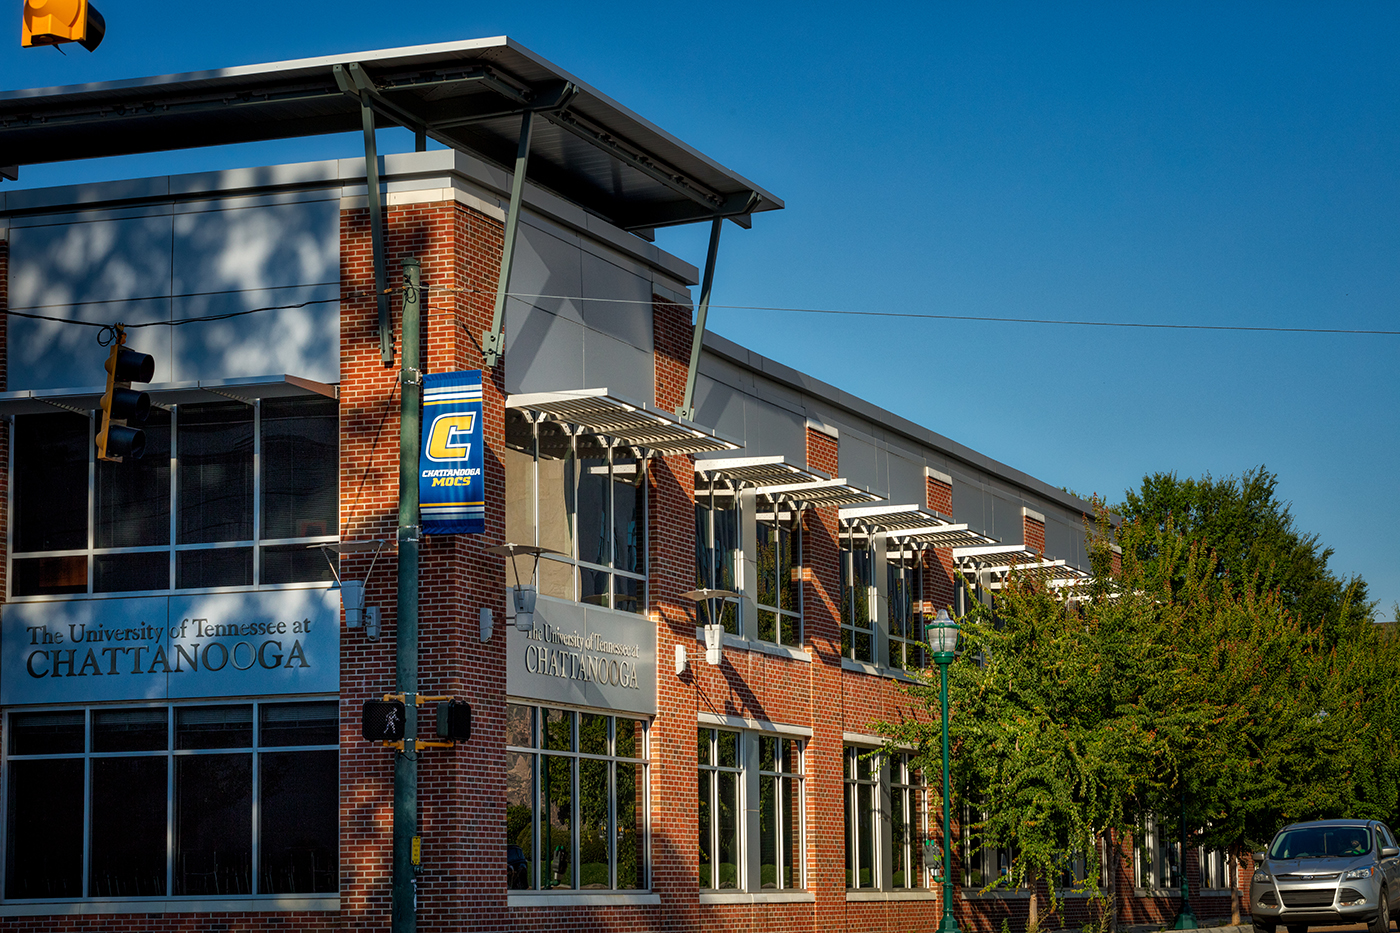 This shot was taken of the exterior remodel at the corner of McCallie Ave. and Houston Street.